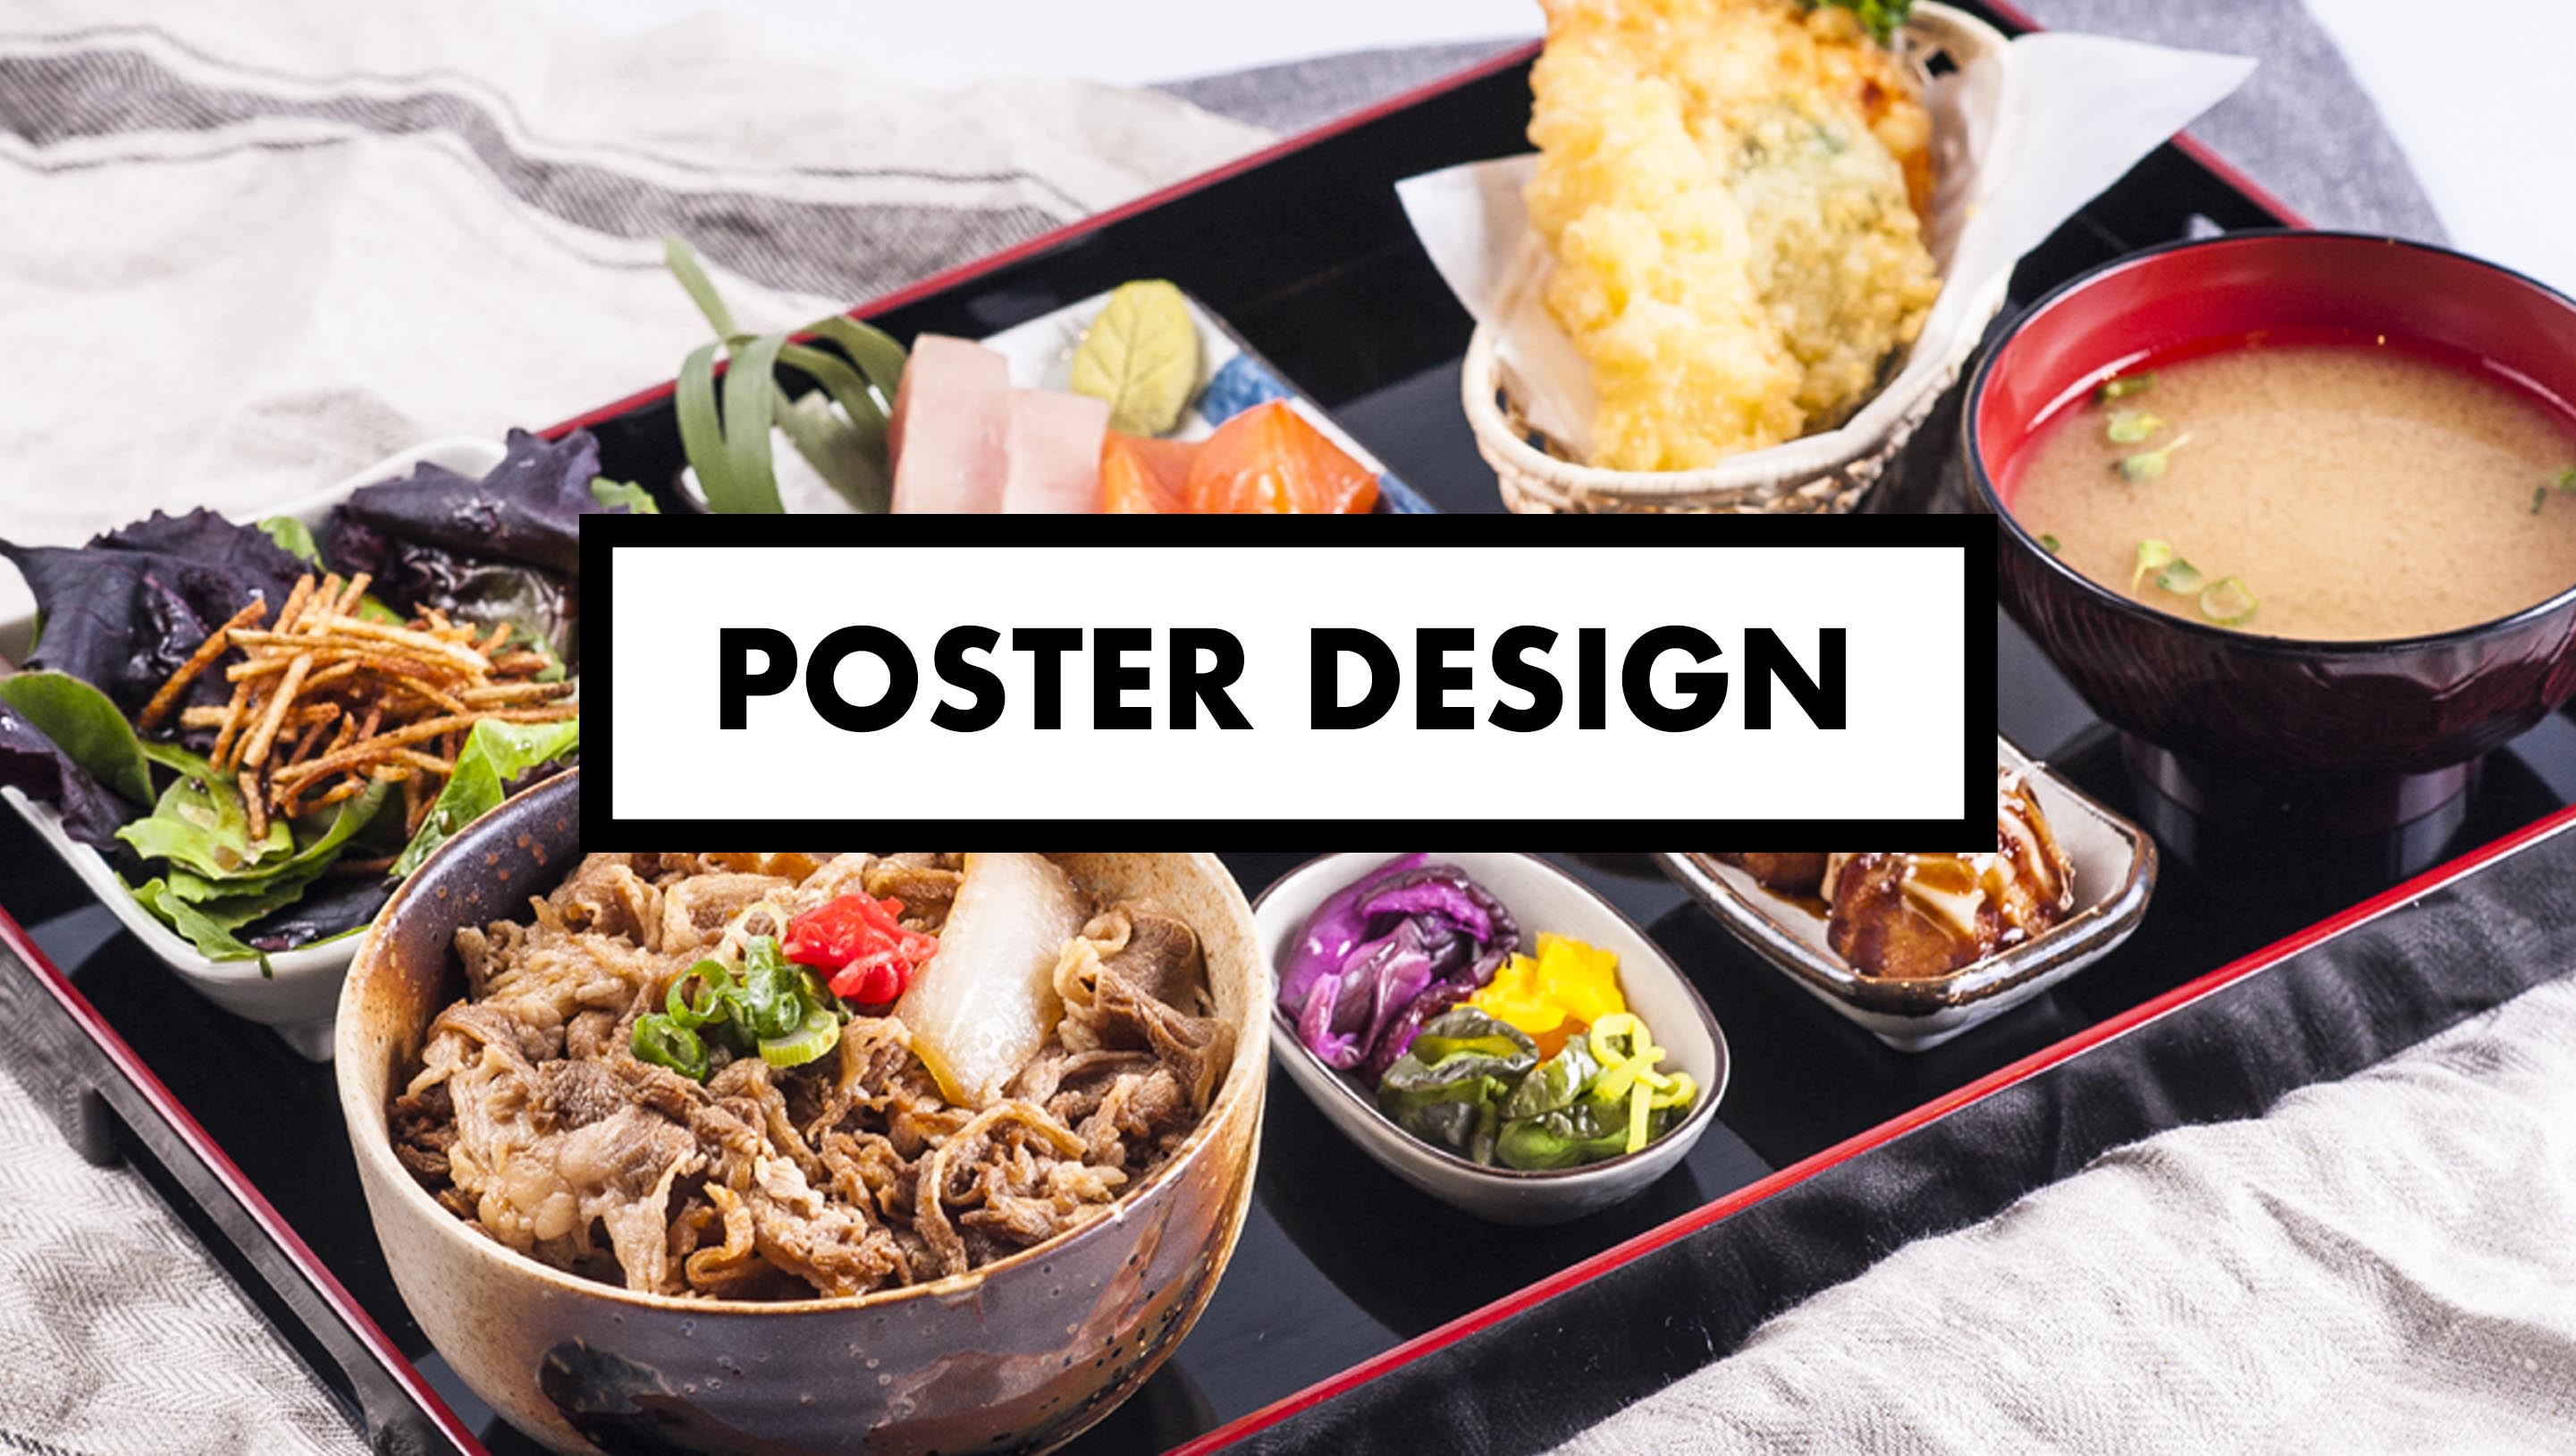 Poster design vancouver - Teishoku Poster Design For A Japanese Restaurant In Vancouver Food Photography Vancouver Commercial Photographer Videographer Stylists